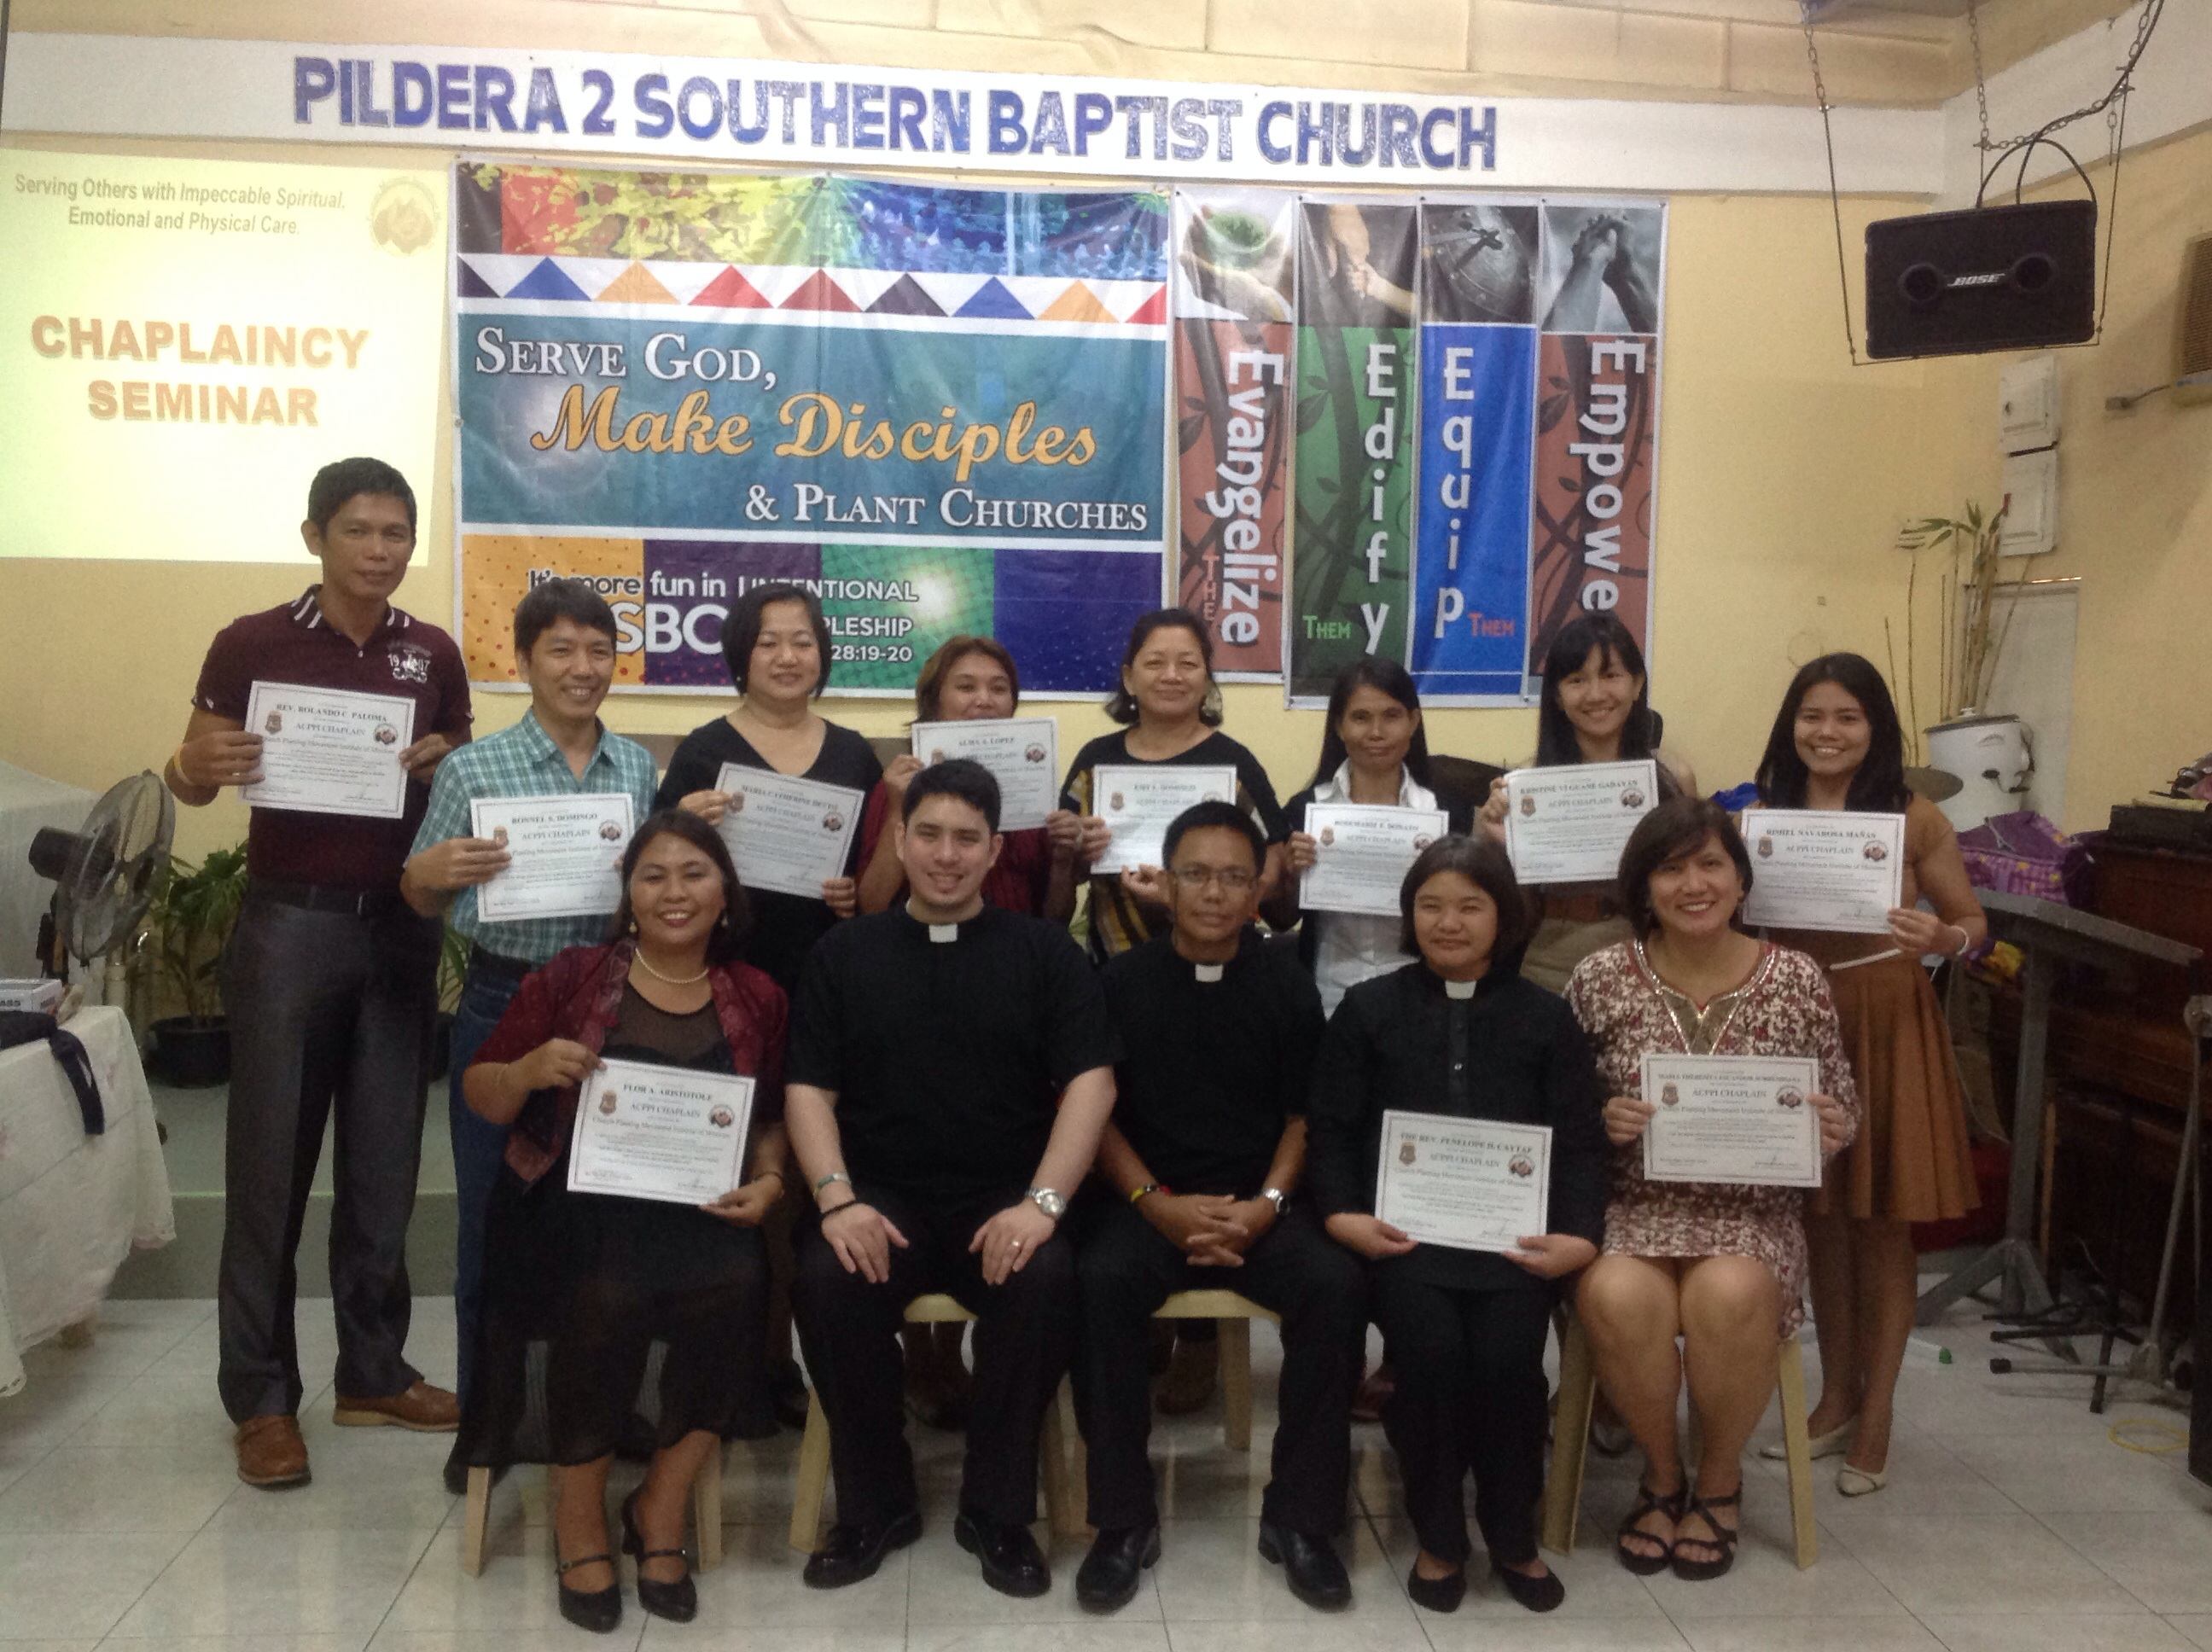 Pastor Terence Camua with Bishop Alex Arceno conducted a Chaplaincy training seminar for pastoral counselors.